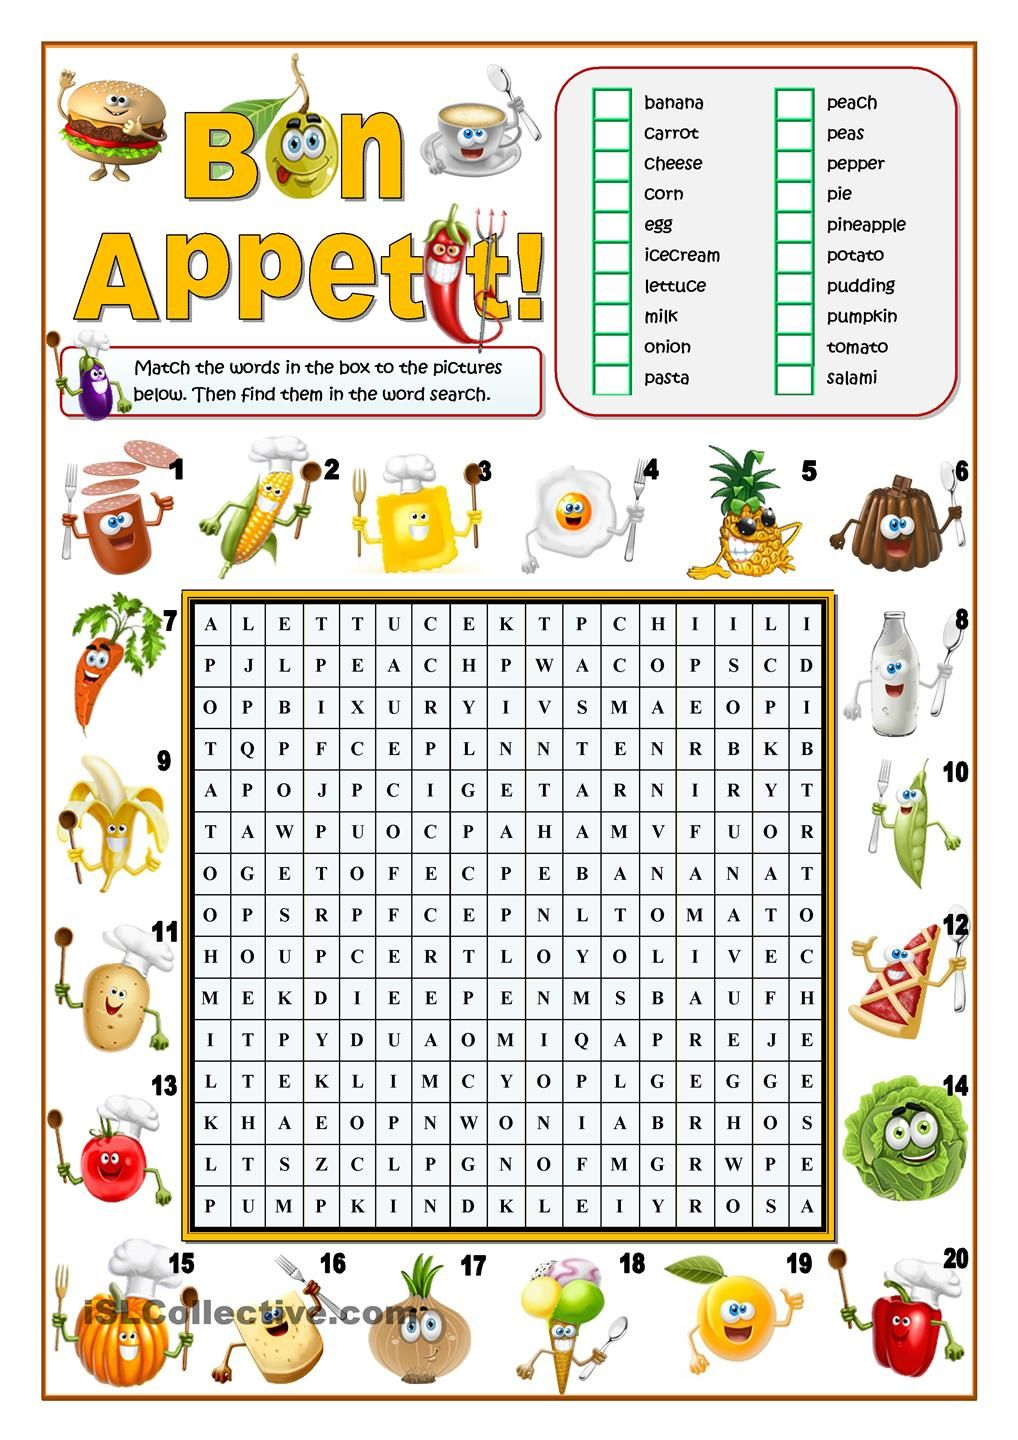 Bon appetit food word search english crosswords - Meaning of cuisine in english ...